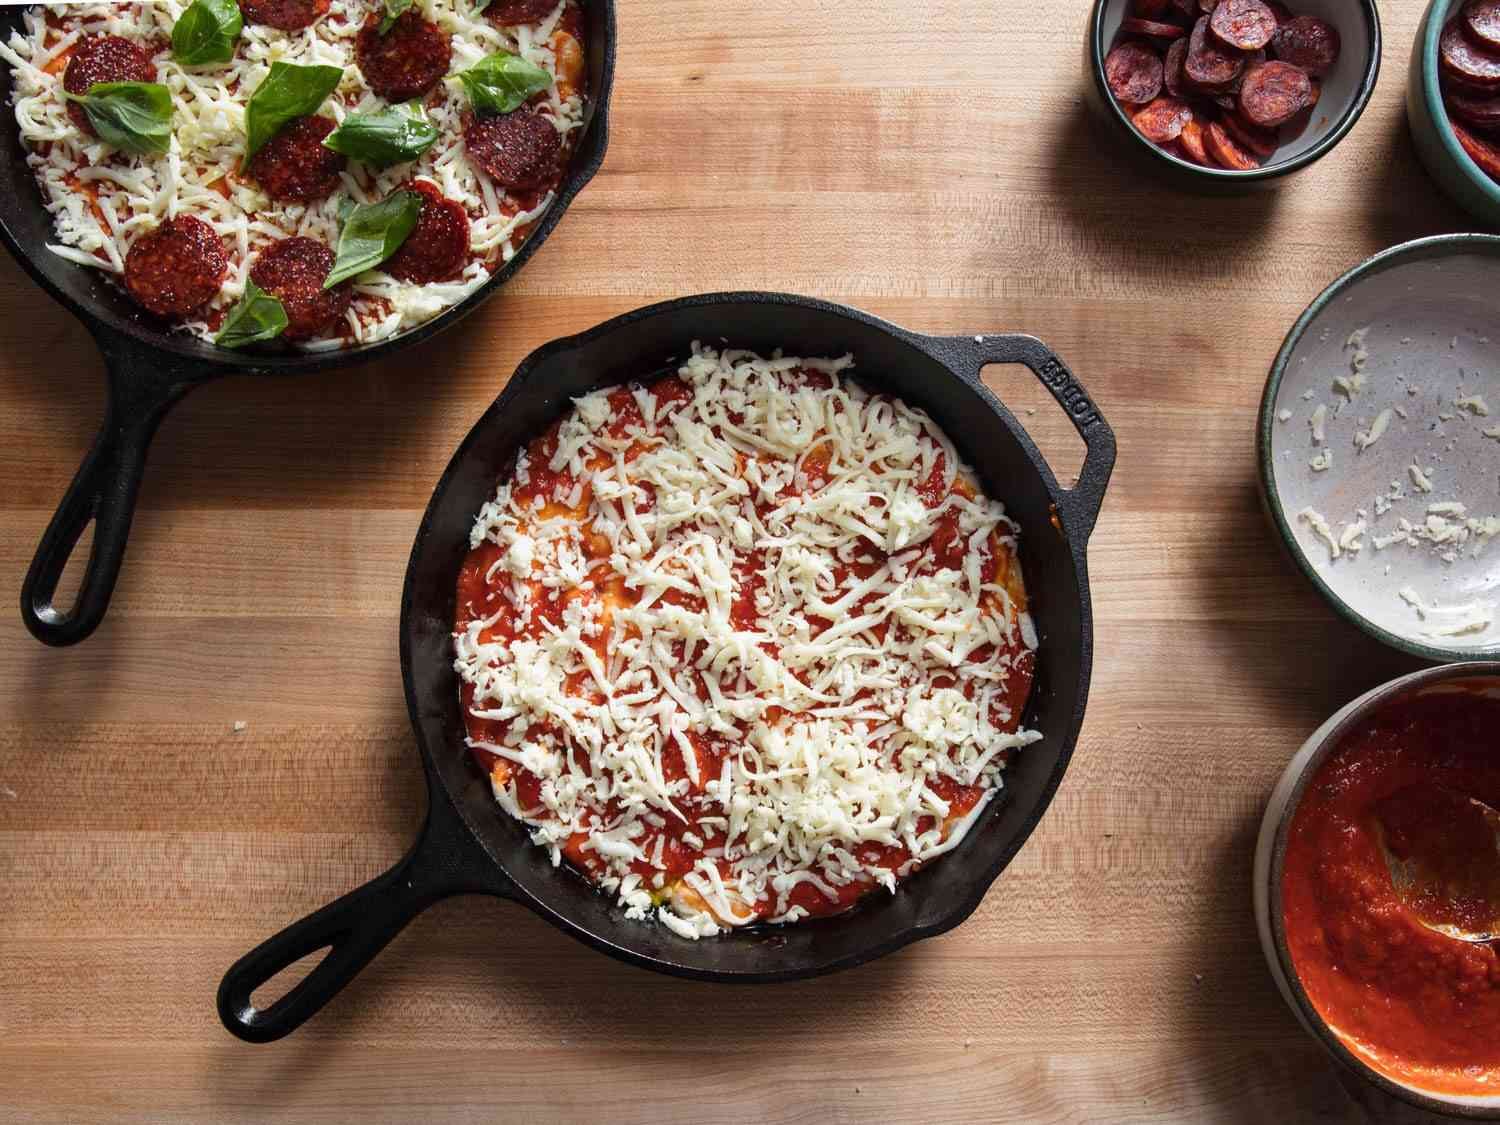 Overhead view of unbaked pan pizza with cheese and toppings